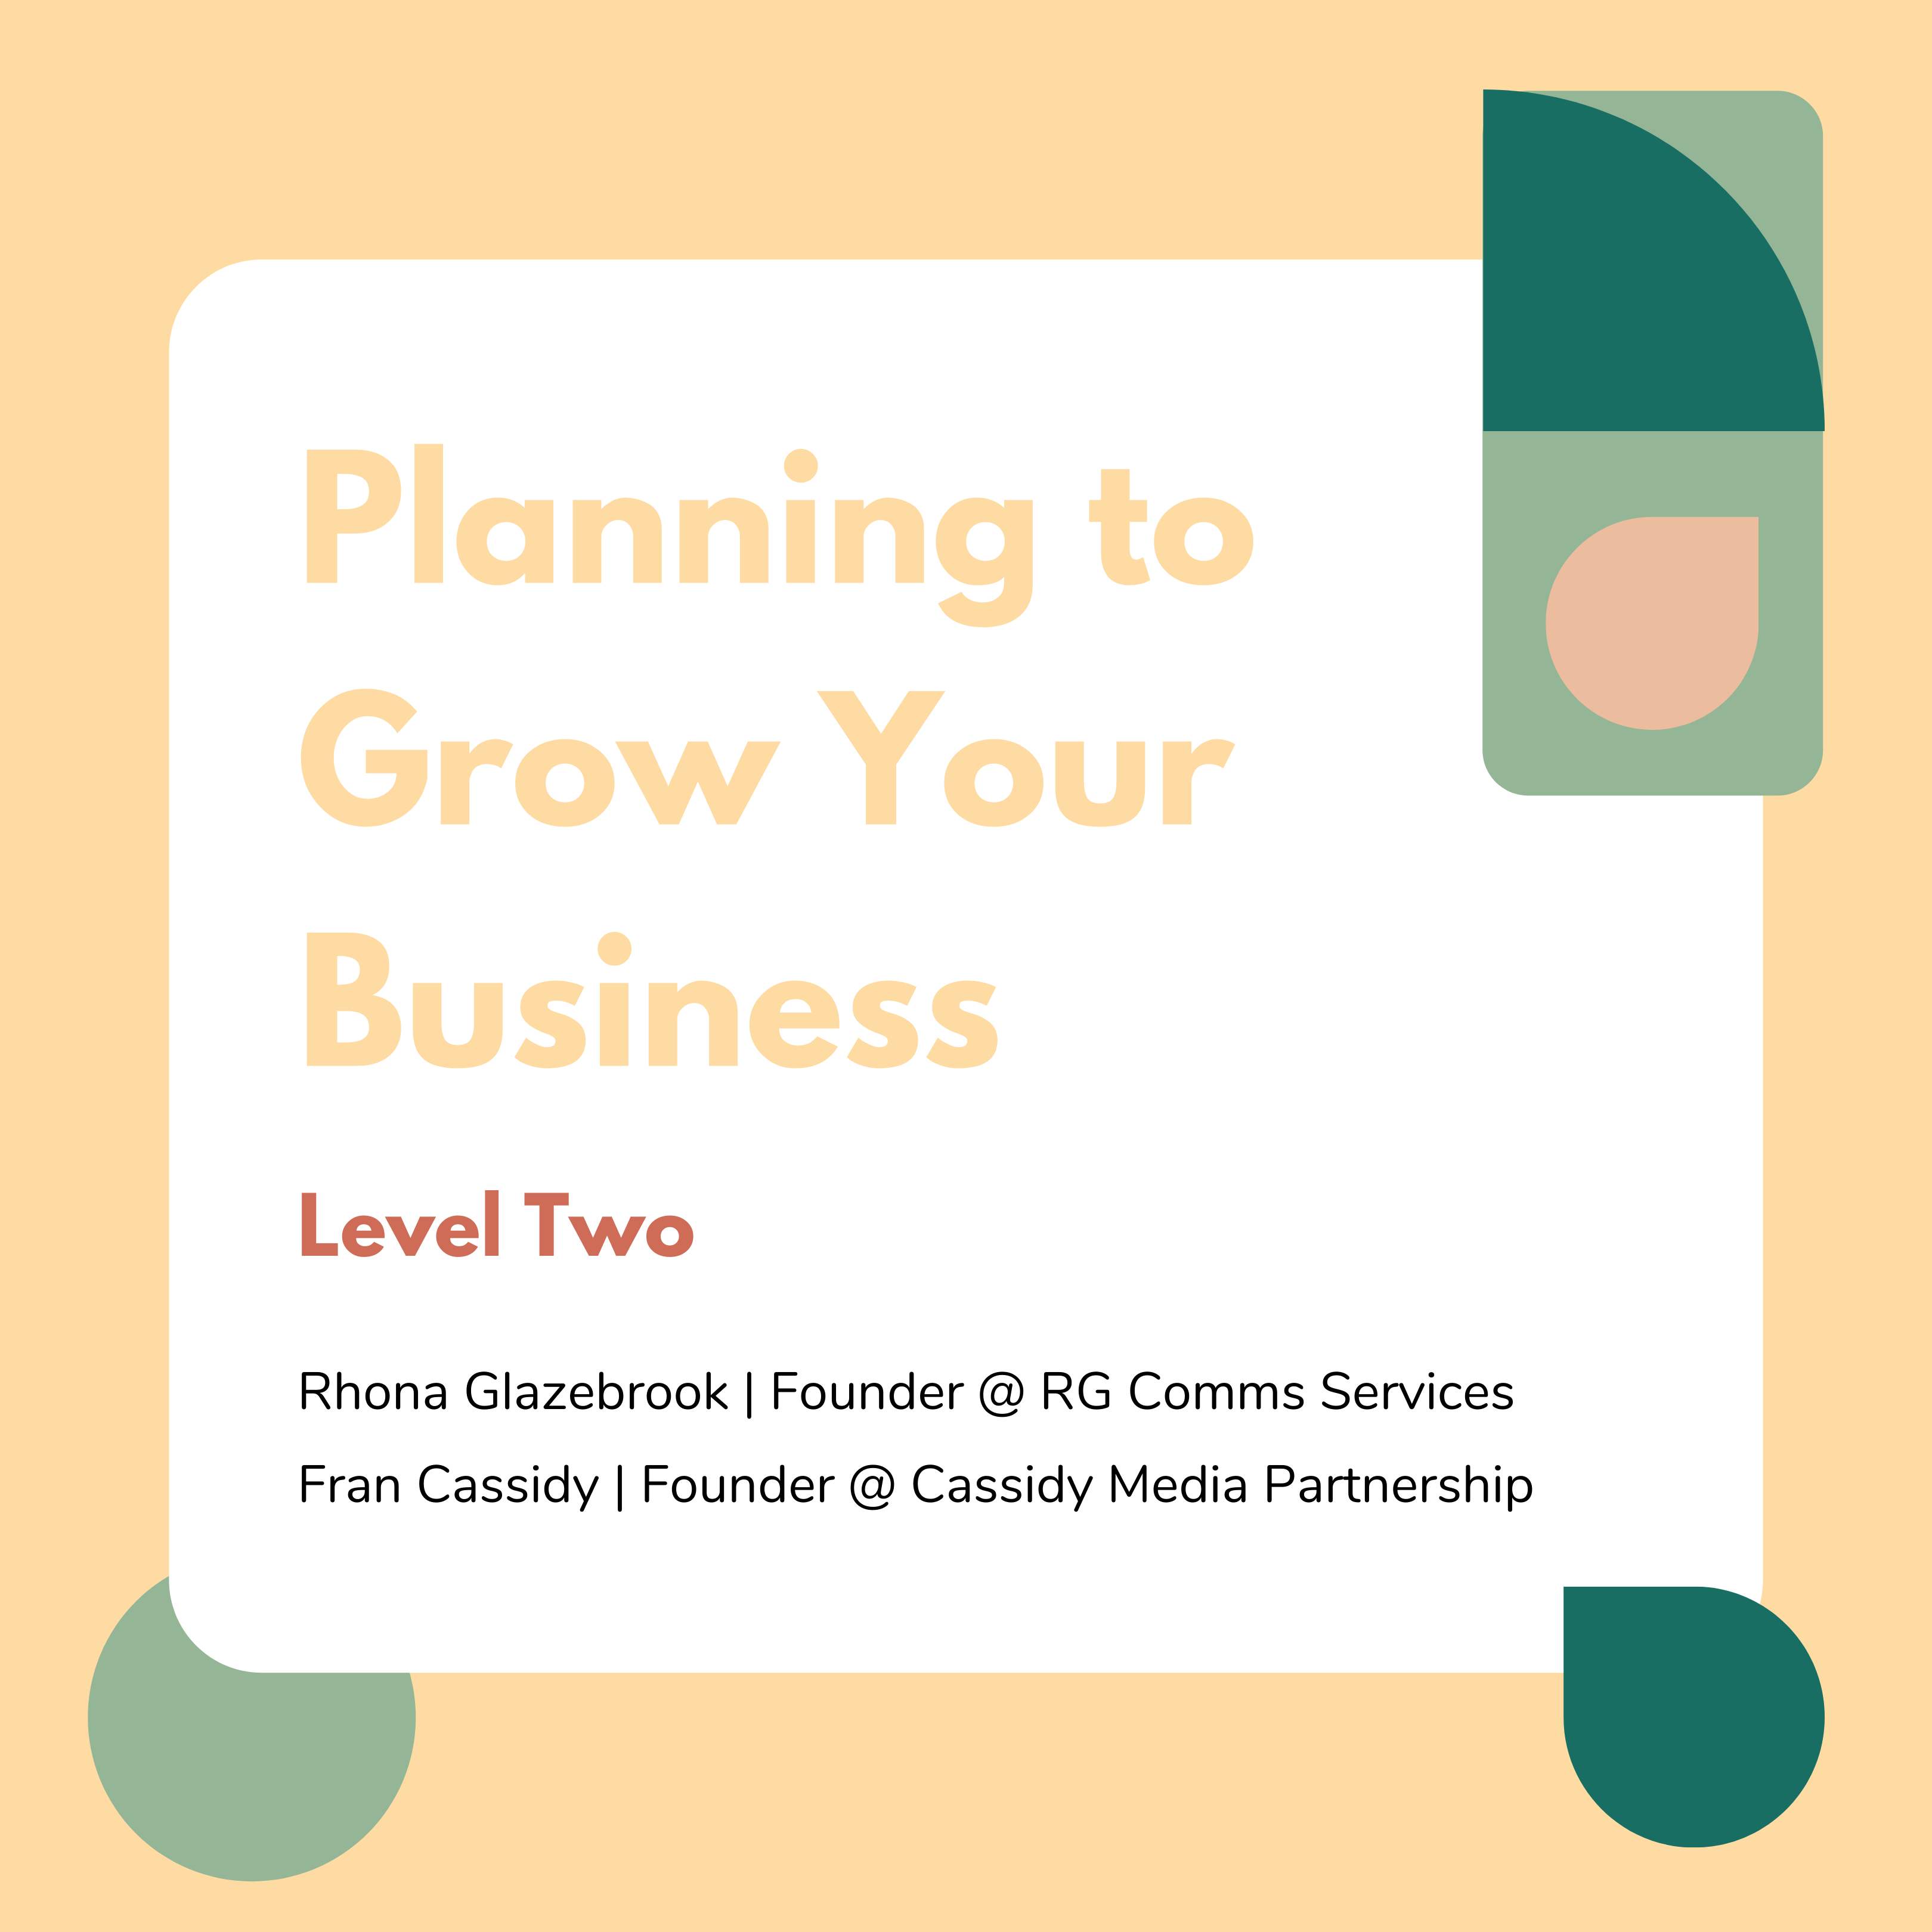 Planning to Grow Your Business